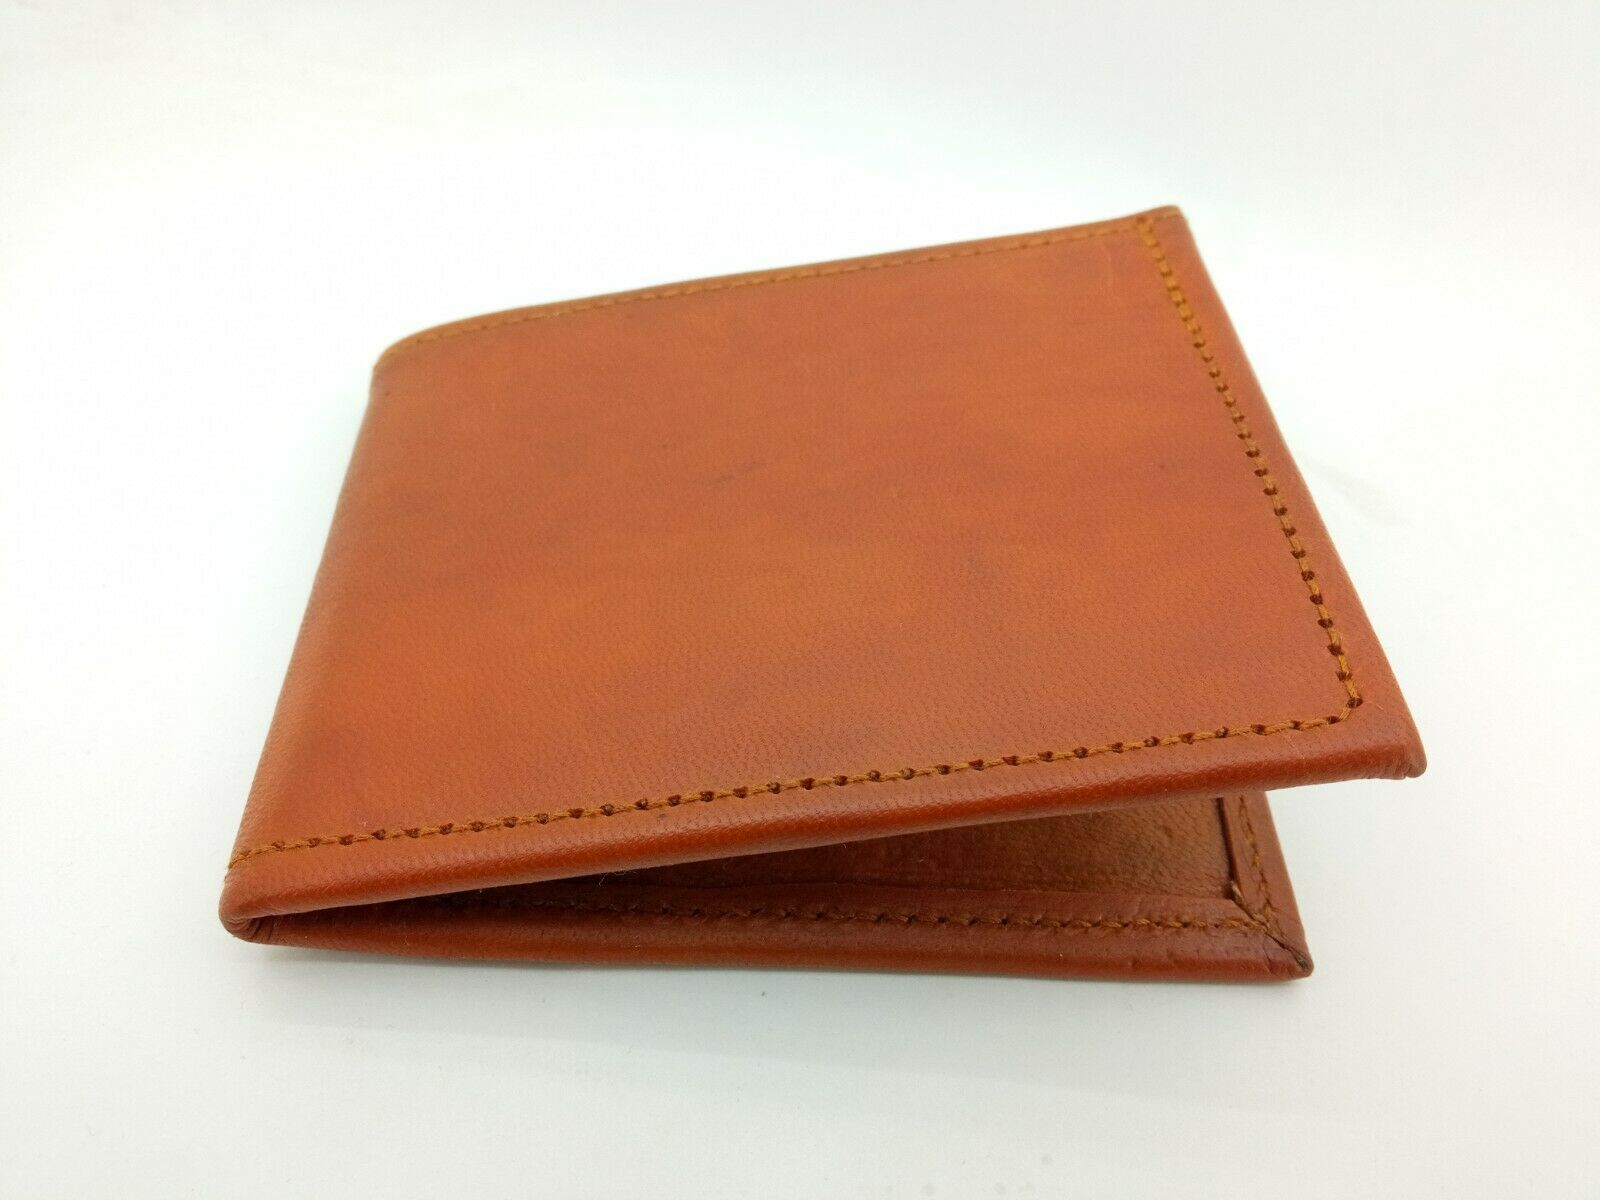 Indian Handmade Pure Leather Men's Wallet, Money Holder, Brown, Plain, Free ship